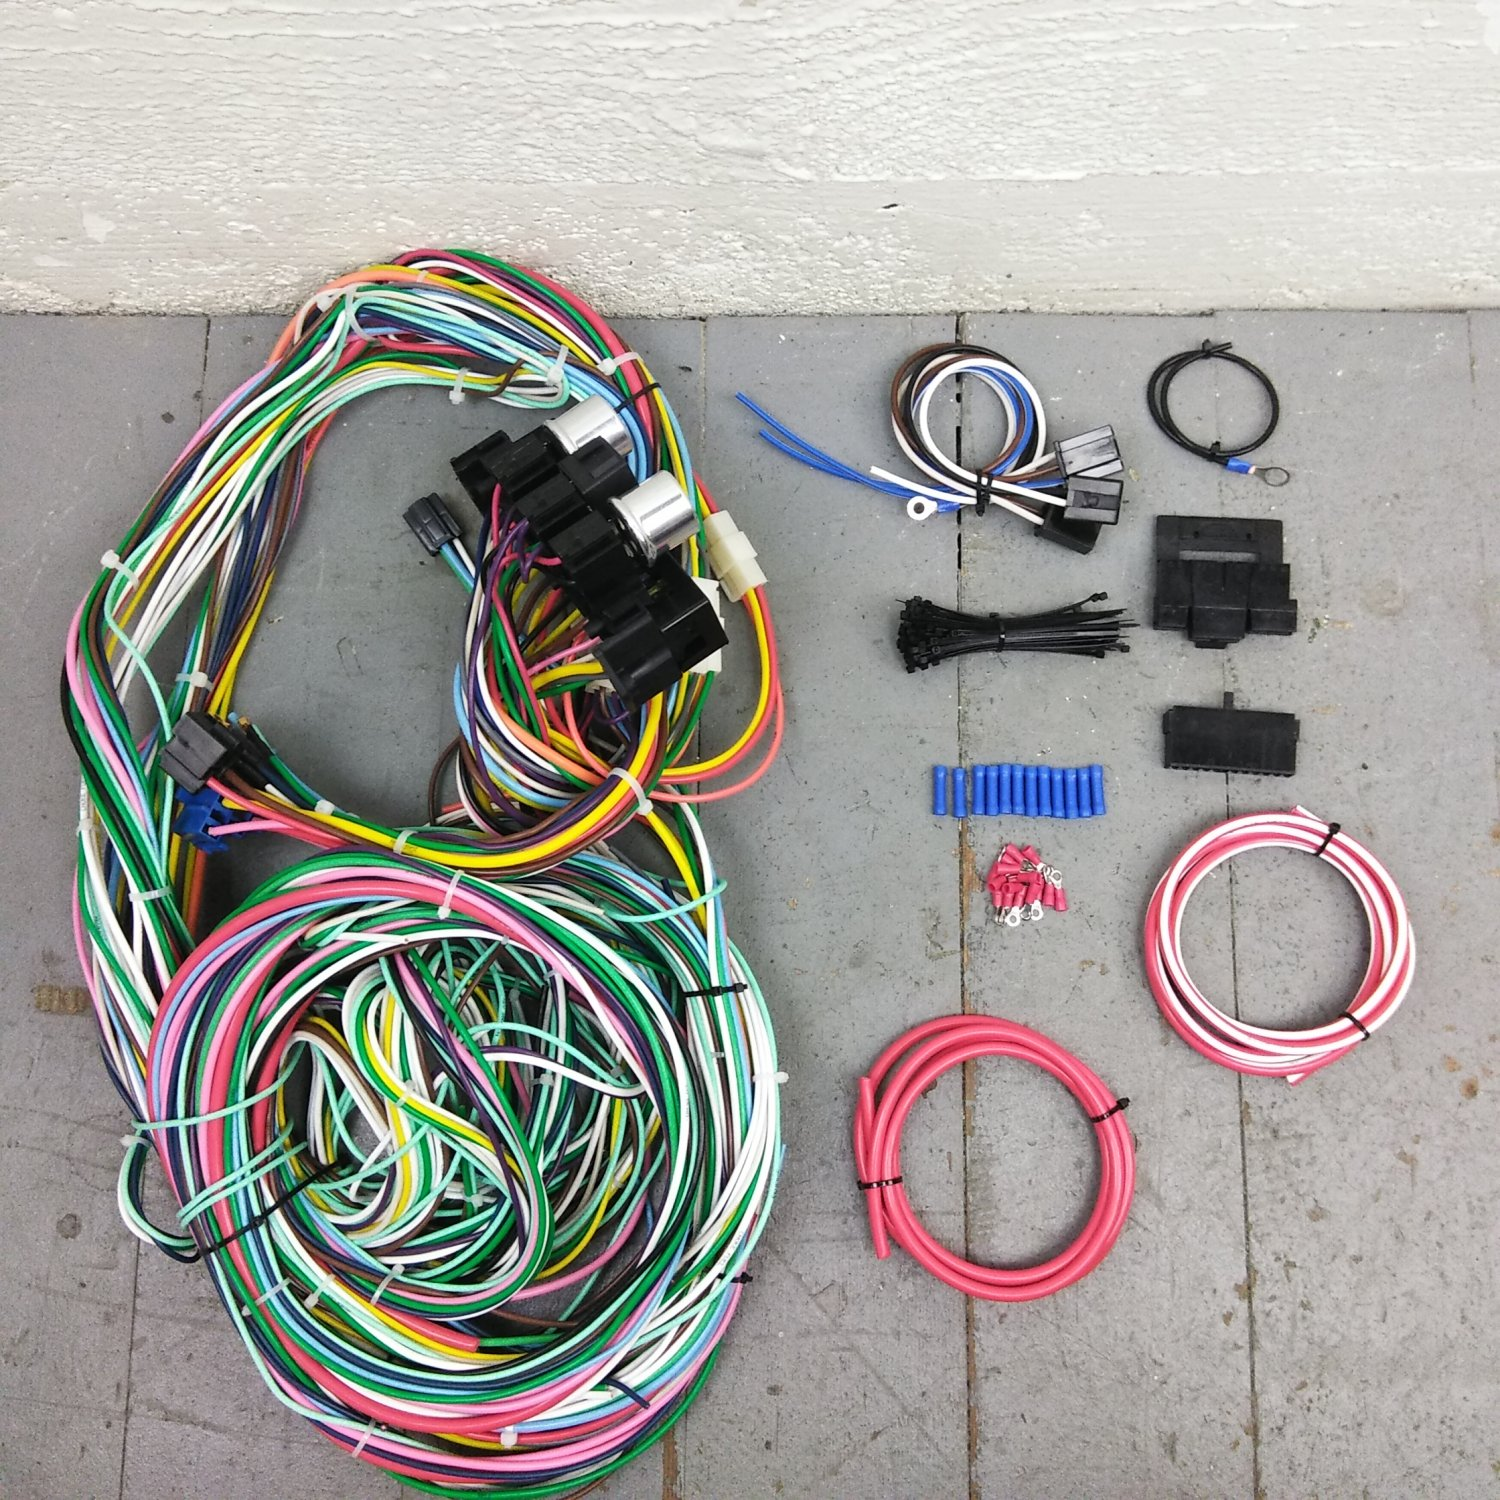 1960 - 1966 Chevy or GMC Truck Wire Harness Upgrade Kit fits painless  circuit. Bar_Product_Description_C